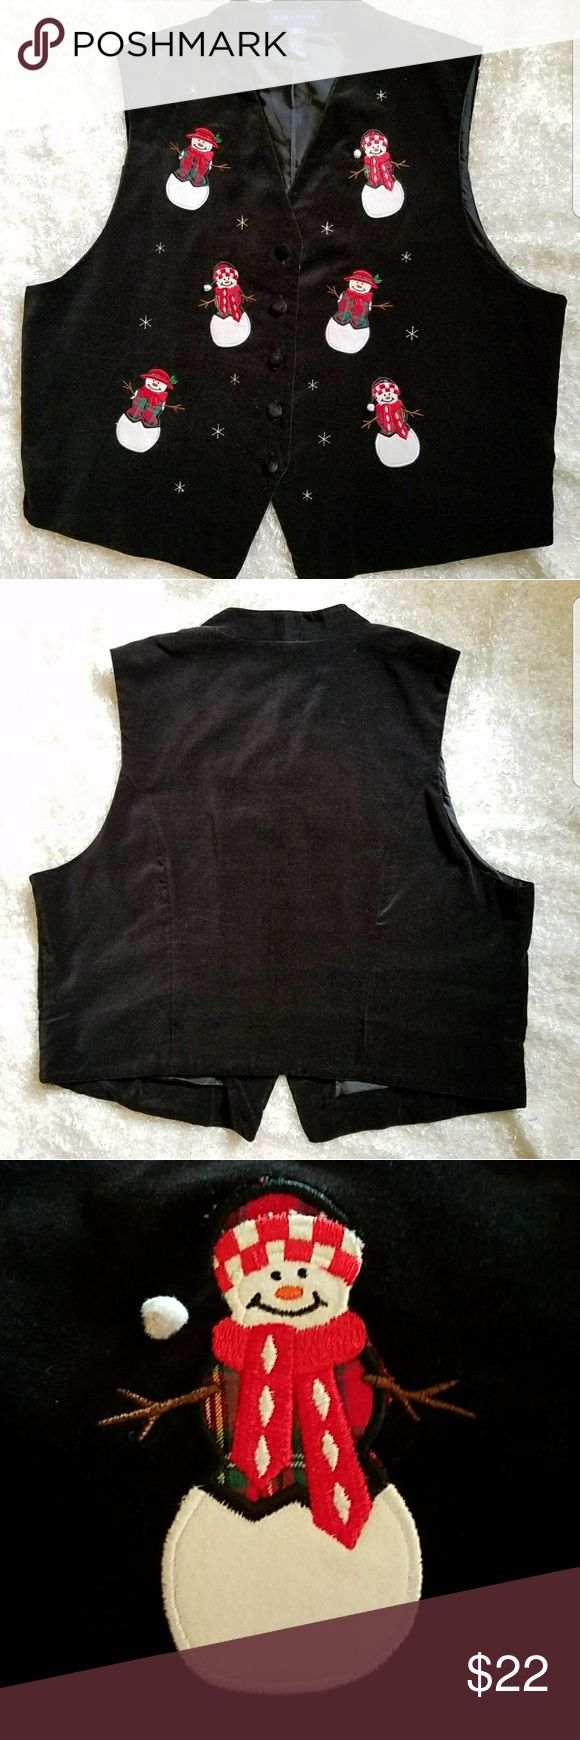 🌼 Karen Scott Christmas Snowman vest size XL This vest is perfect for all things Christmas and snowman.  It is in excellent used condtion. Karen Scott Jackets & Coats Vests